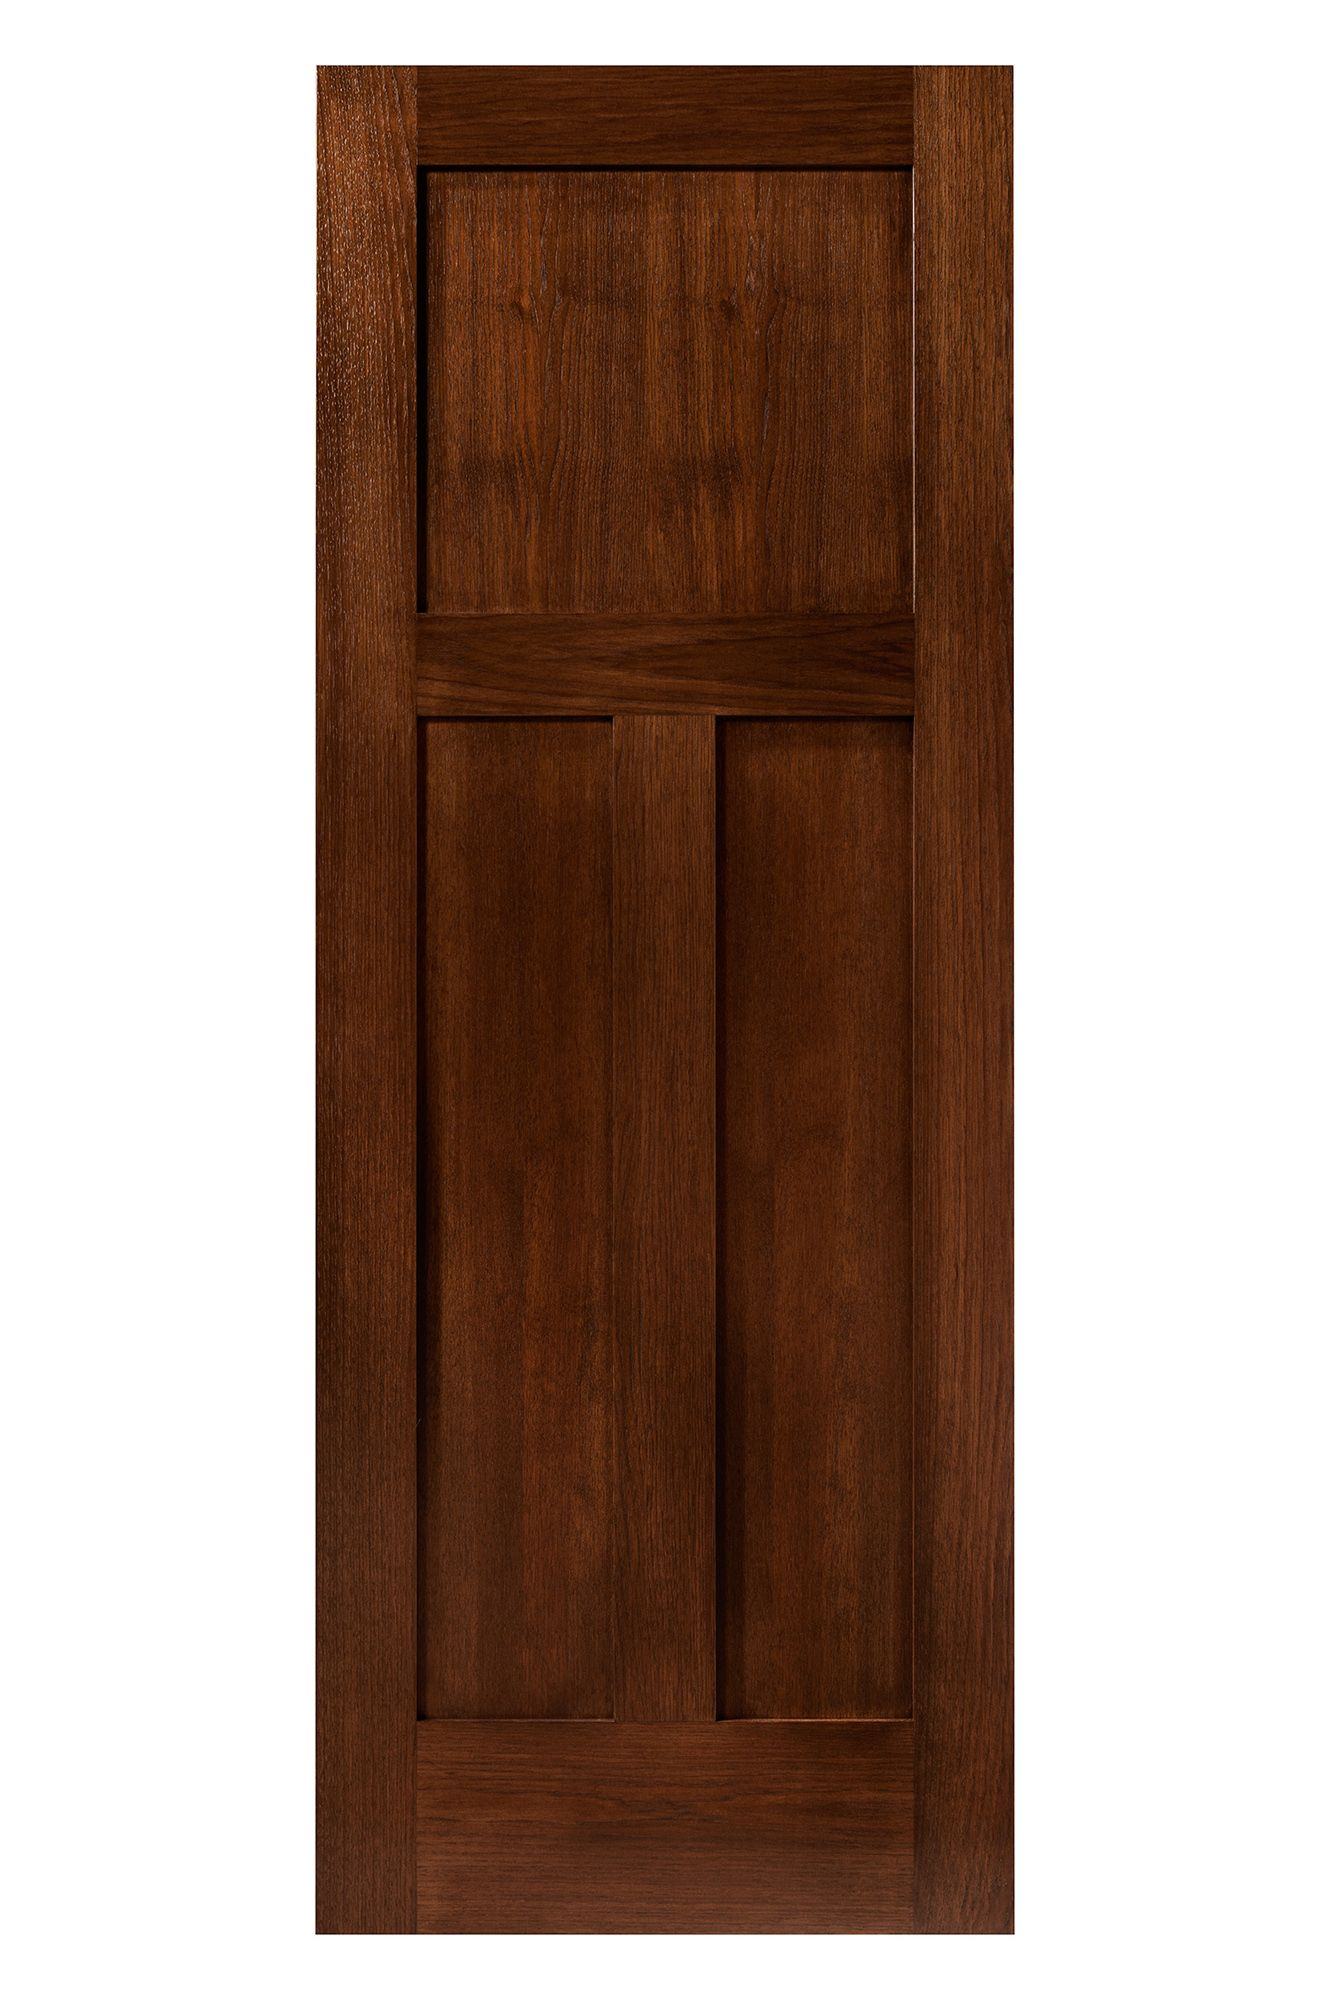 Builddirect Woodport Doors Interior Pre Hung Shaker Collection